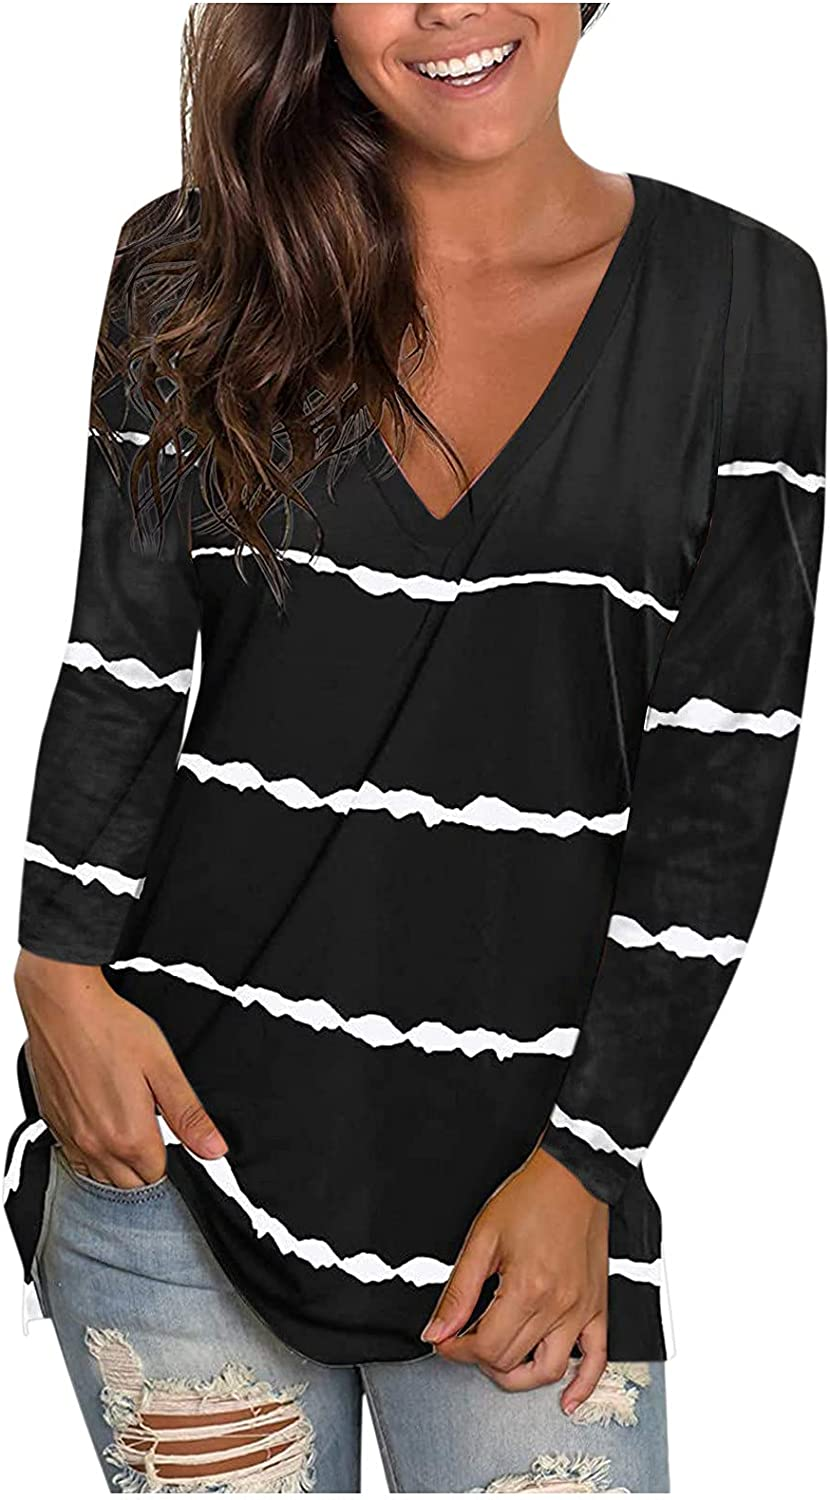 Jaqqra Womens Long Sleeve Tops, Womens Casual Striped Side Split V-Neck Long Sleeve Bloluse Tops Loose Pullover Shirts